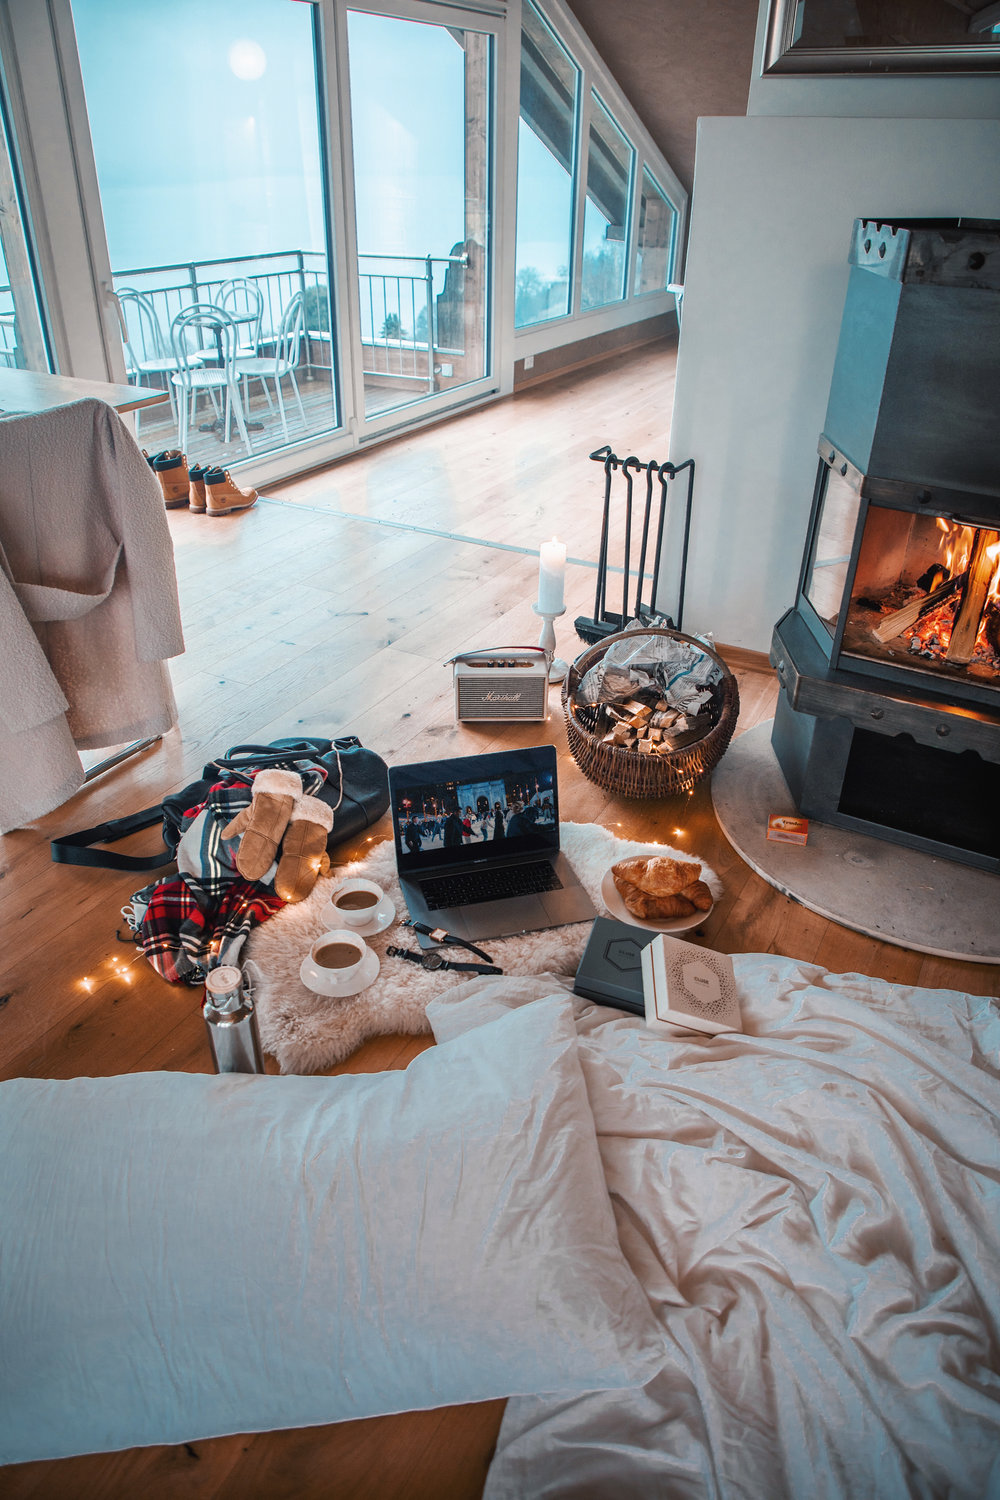 lion-in-the-wild_cluse-christmas-cosy-home-12.jpg